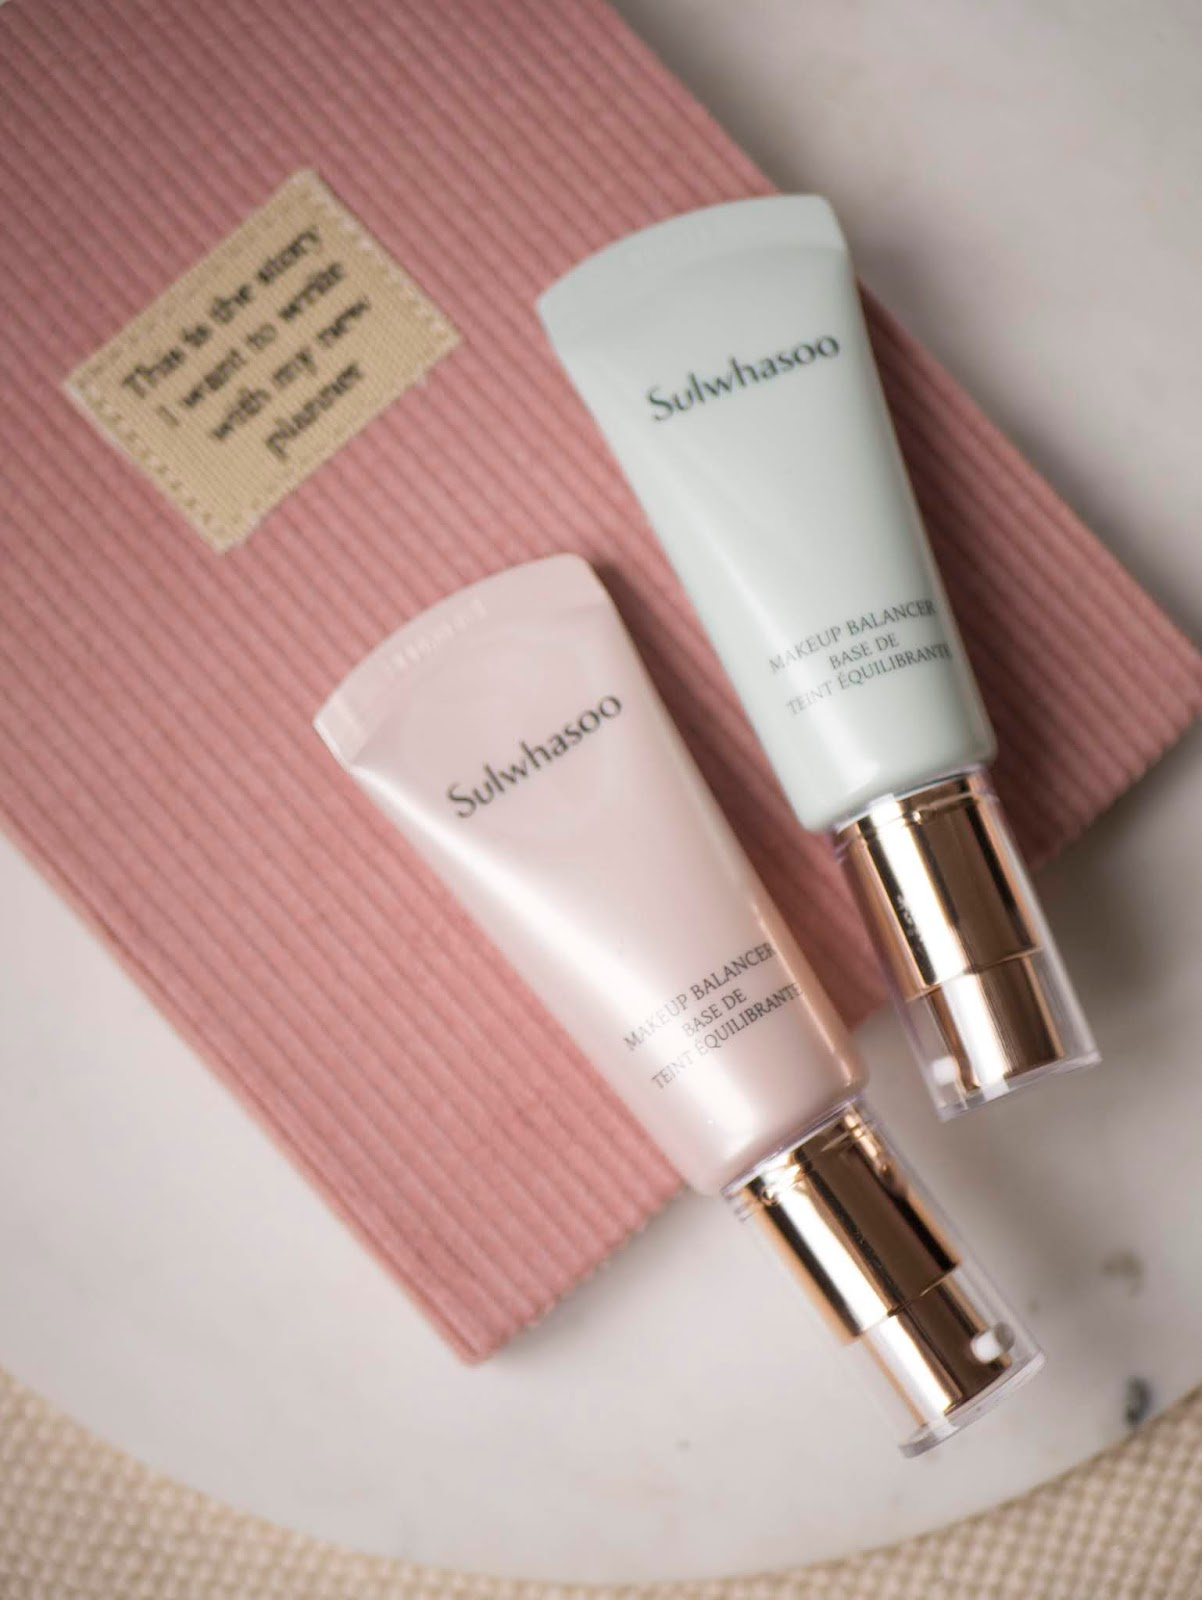 Sulwhasoo - Collection make-up